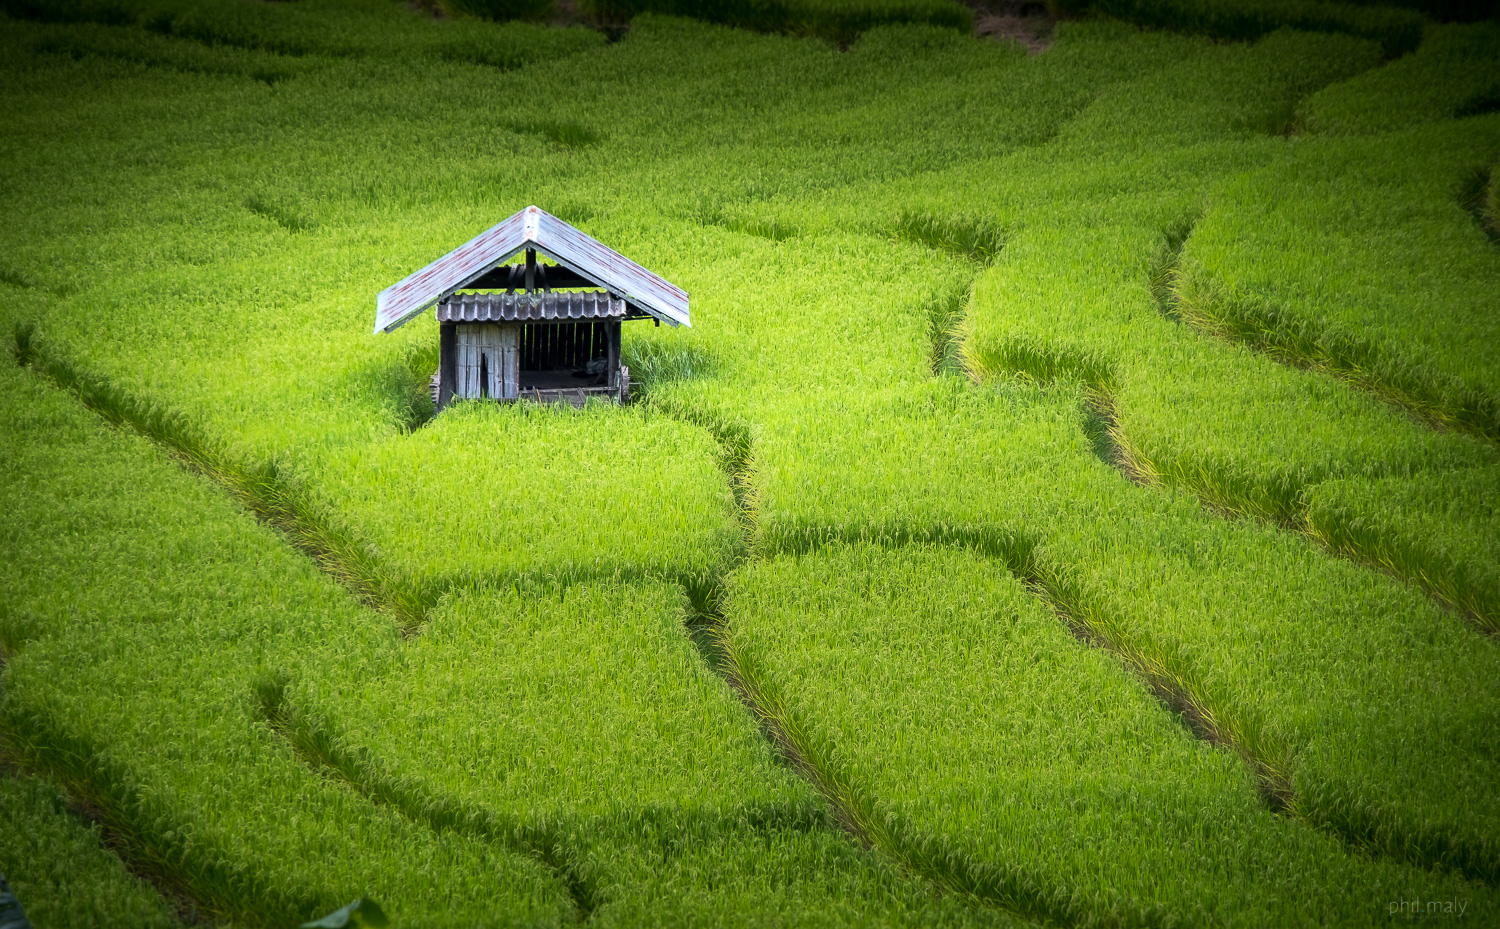 Wooden hut in the middle of rice fields